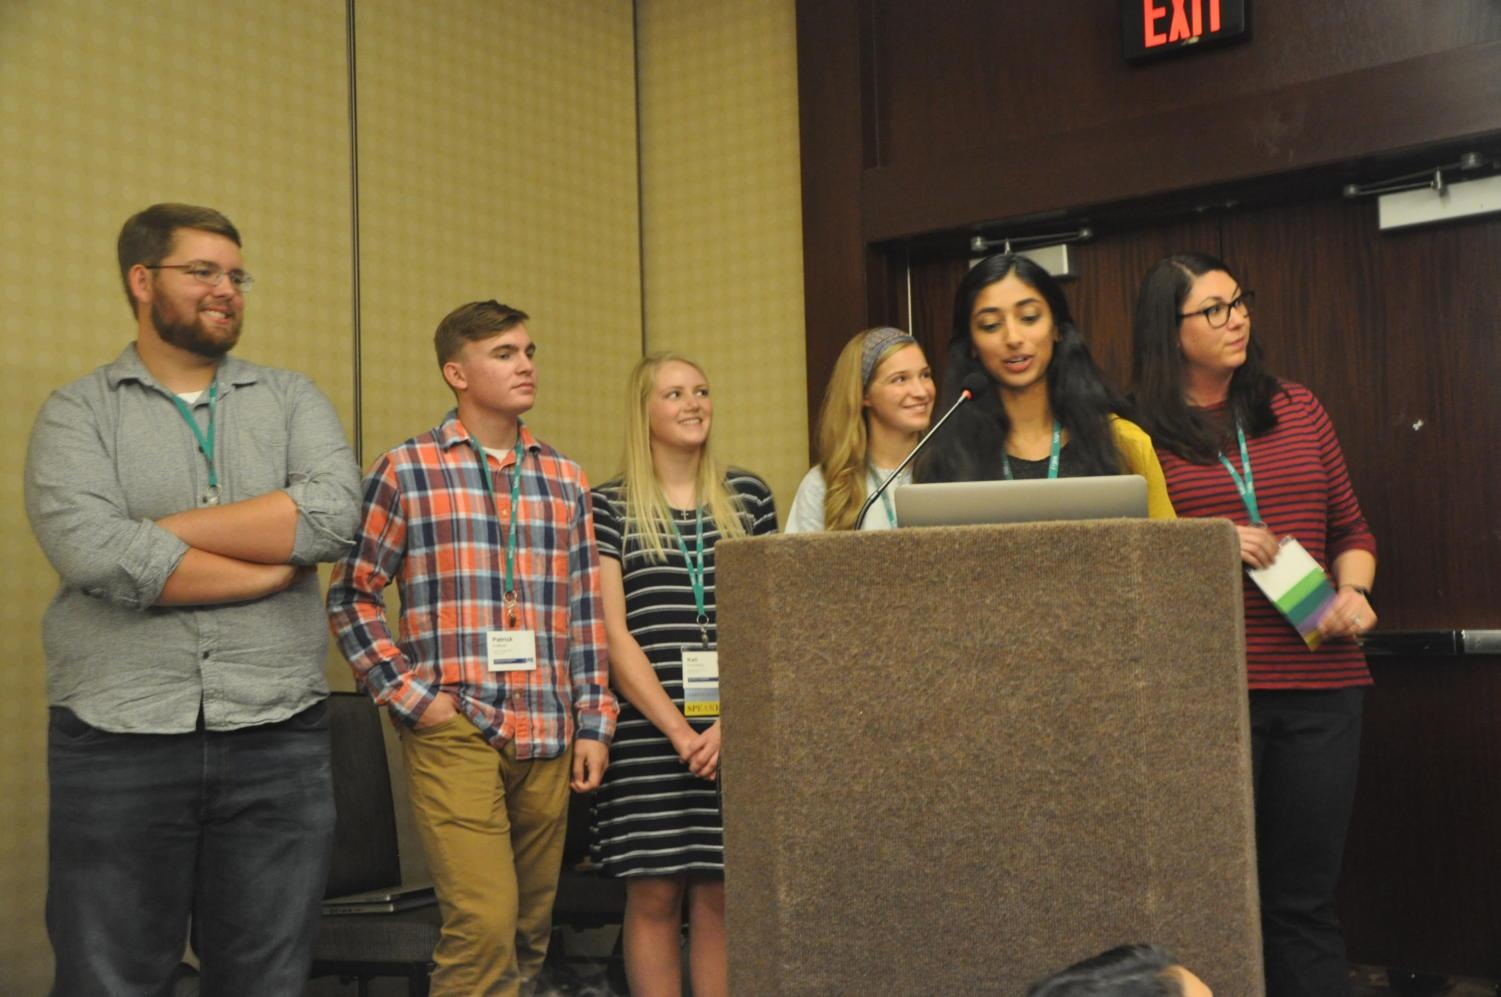 Pittsburg (Kan.) High School seniors Connor Balthazor, Patrick Sullivan, Kali Poenitske, Maddie Baden, Gina Mathew and and their adviser Emily Smith talk about the Booster Redux's investigative adventure uncovering discrepancies in their principal's resume leading to her resignation they had in March 2017. They led a session on Friday at the JEA/NSPA Fall High School Journalism Convention at the Hyatt Regency in Dallas, which is being attended by Sidekick newspaper, KCBY-TV and Round-Up yearbook staff members.